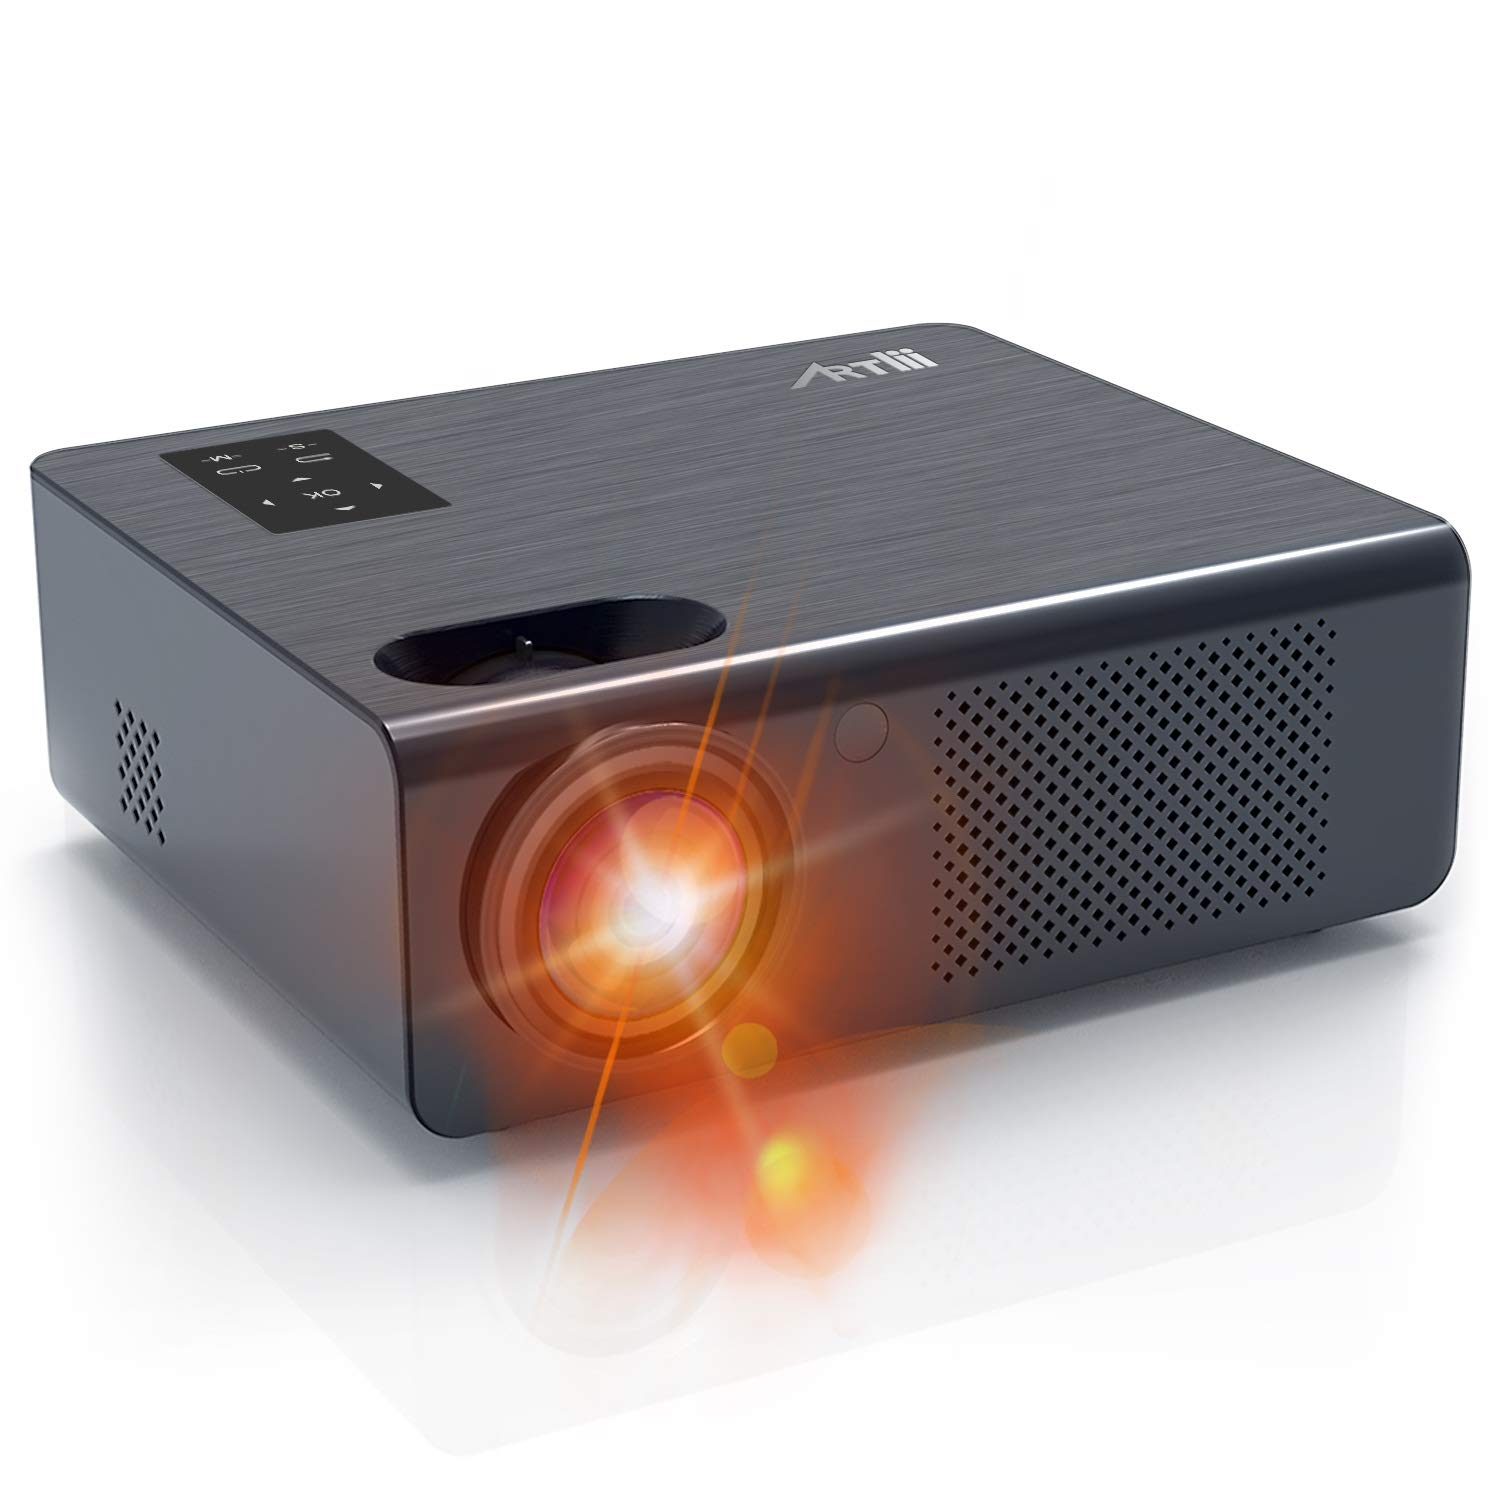 Home Theater Projector - Artlii Full HD Movie Projector with Zoom, 200 ANSI Overhead Projector, LED Projector with 250'' Projection Size HiFi Stereo, Compatible with Nintendo Switch Chromecast TV